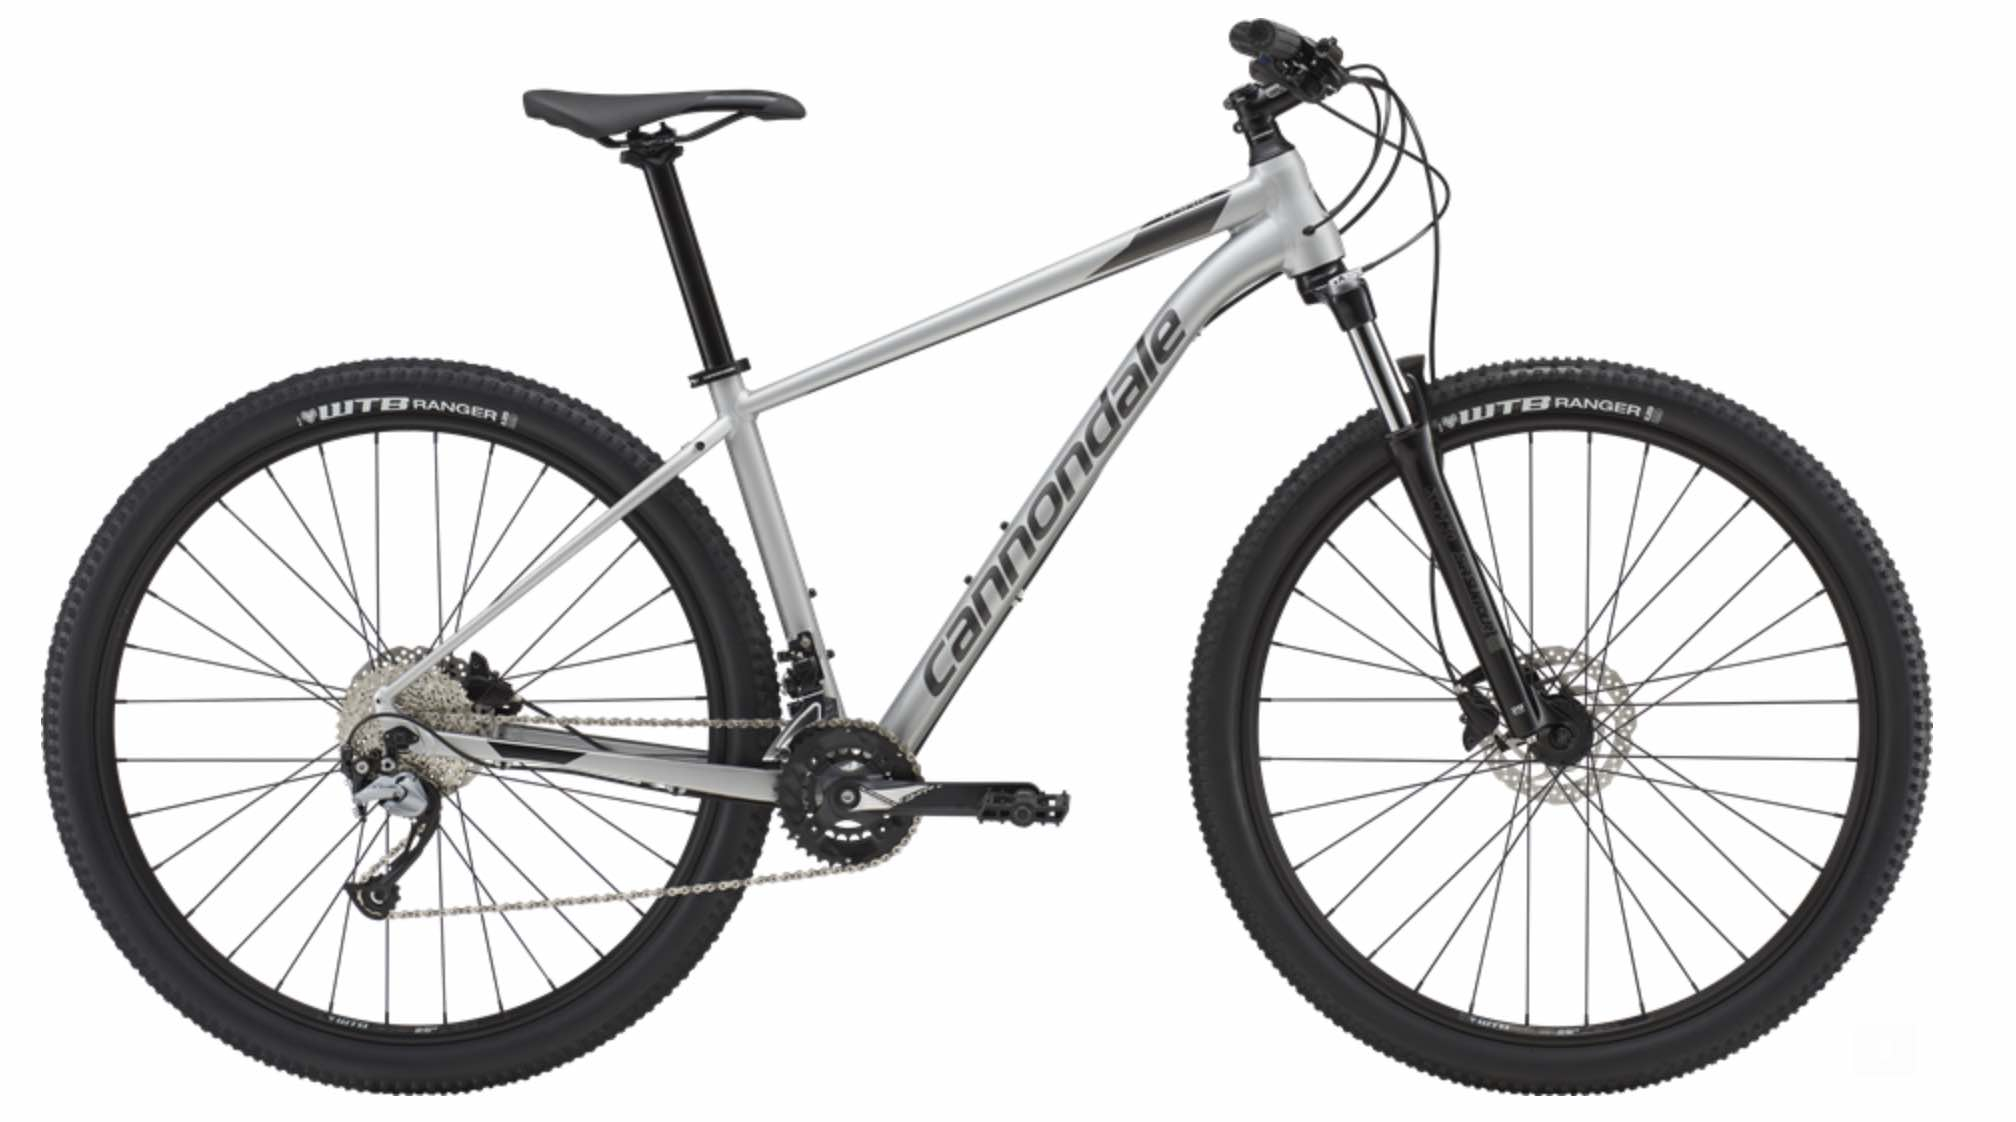 Cannondale Trail 6 Sølv - 2019 - 2x9 speed - C26609M60xx | item_misc